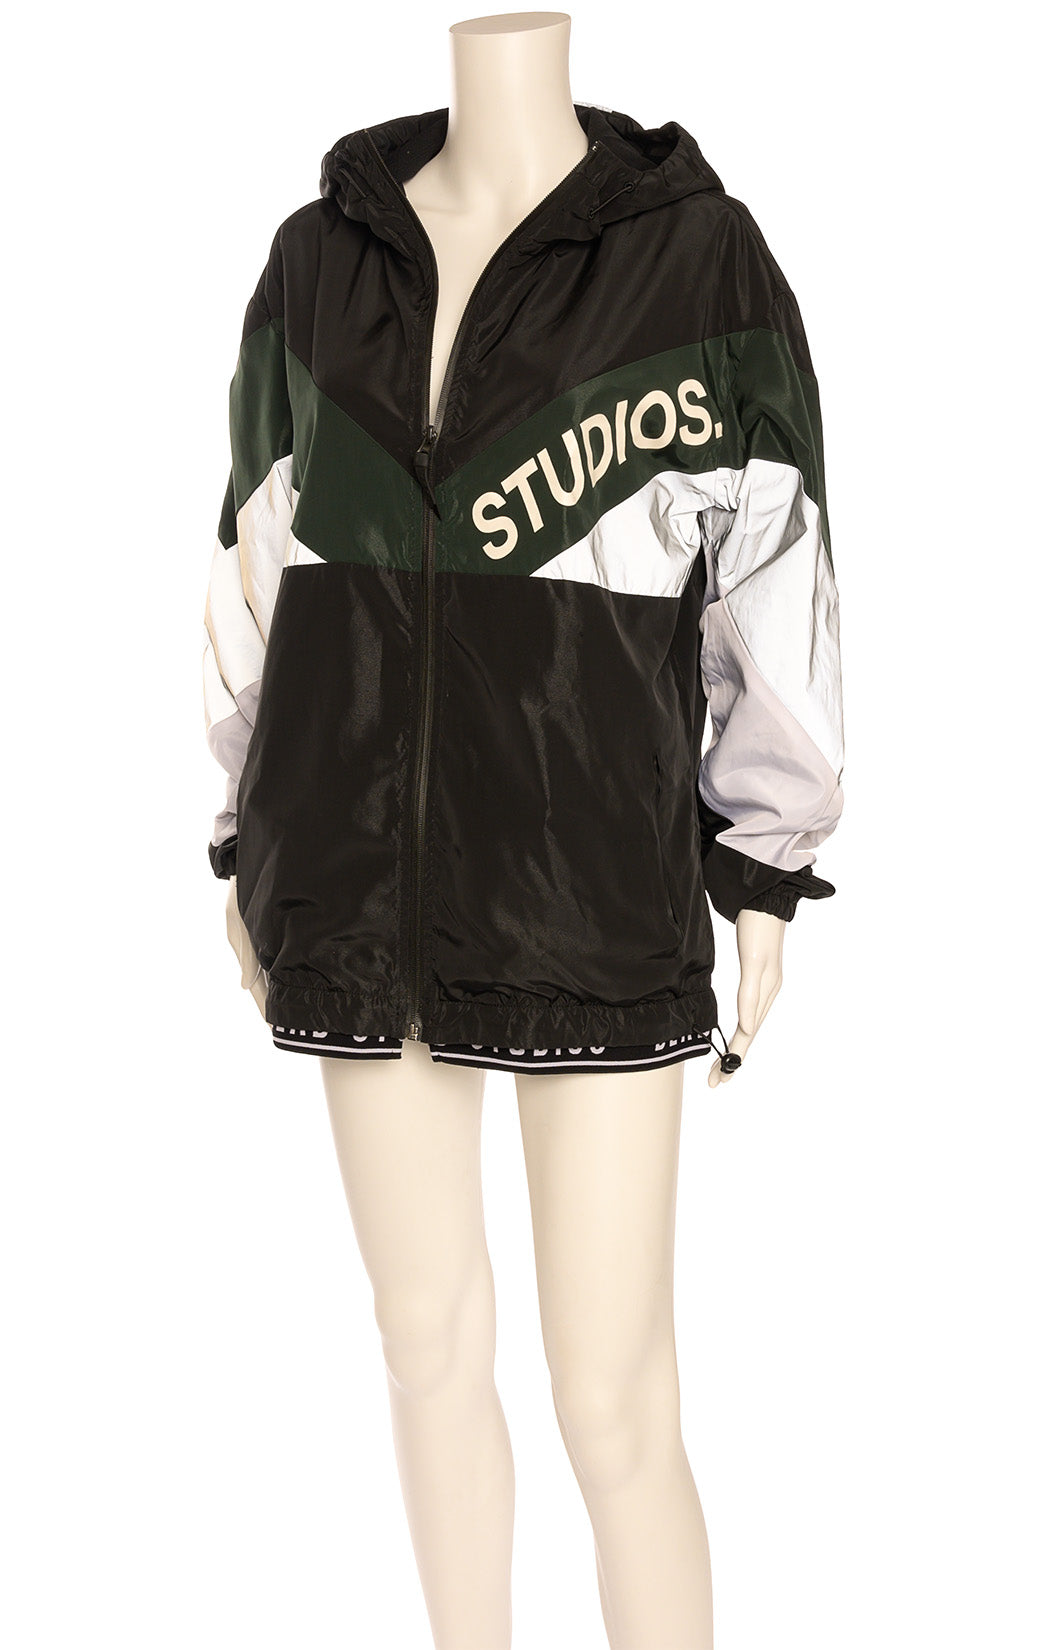 Front view of DEAD STUDIOS  Jacket Size: Small